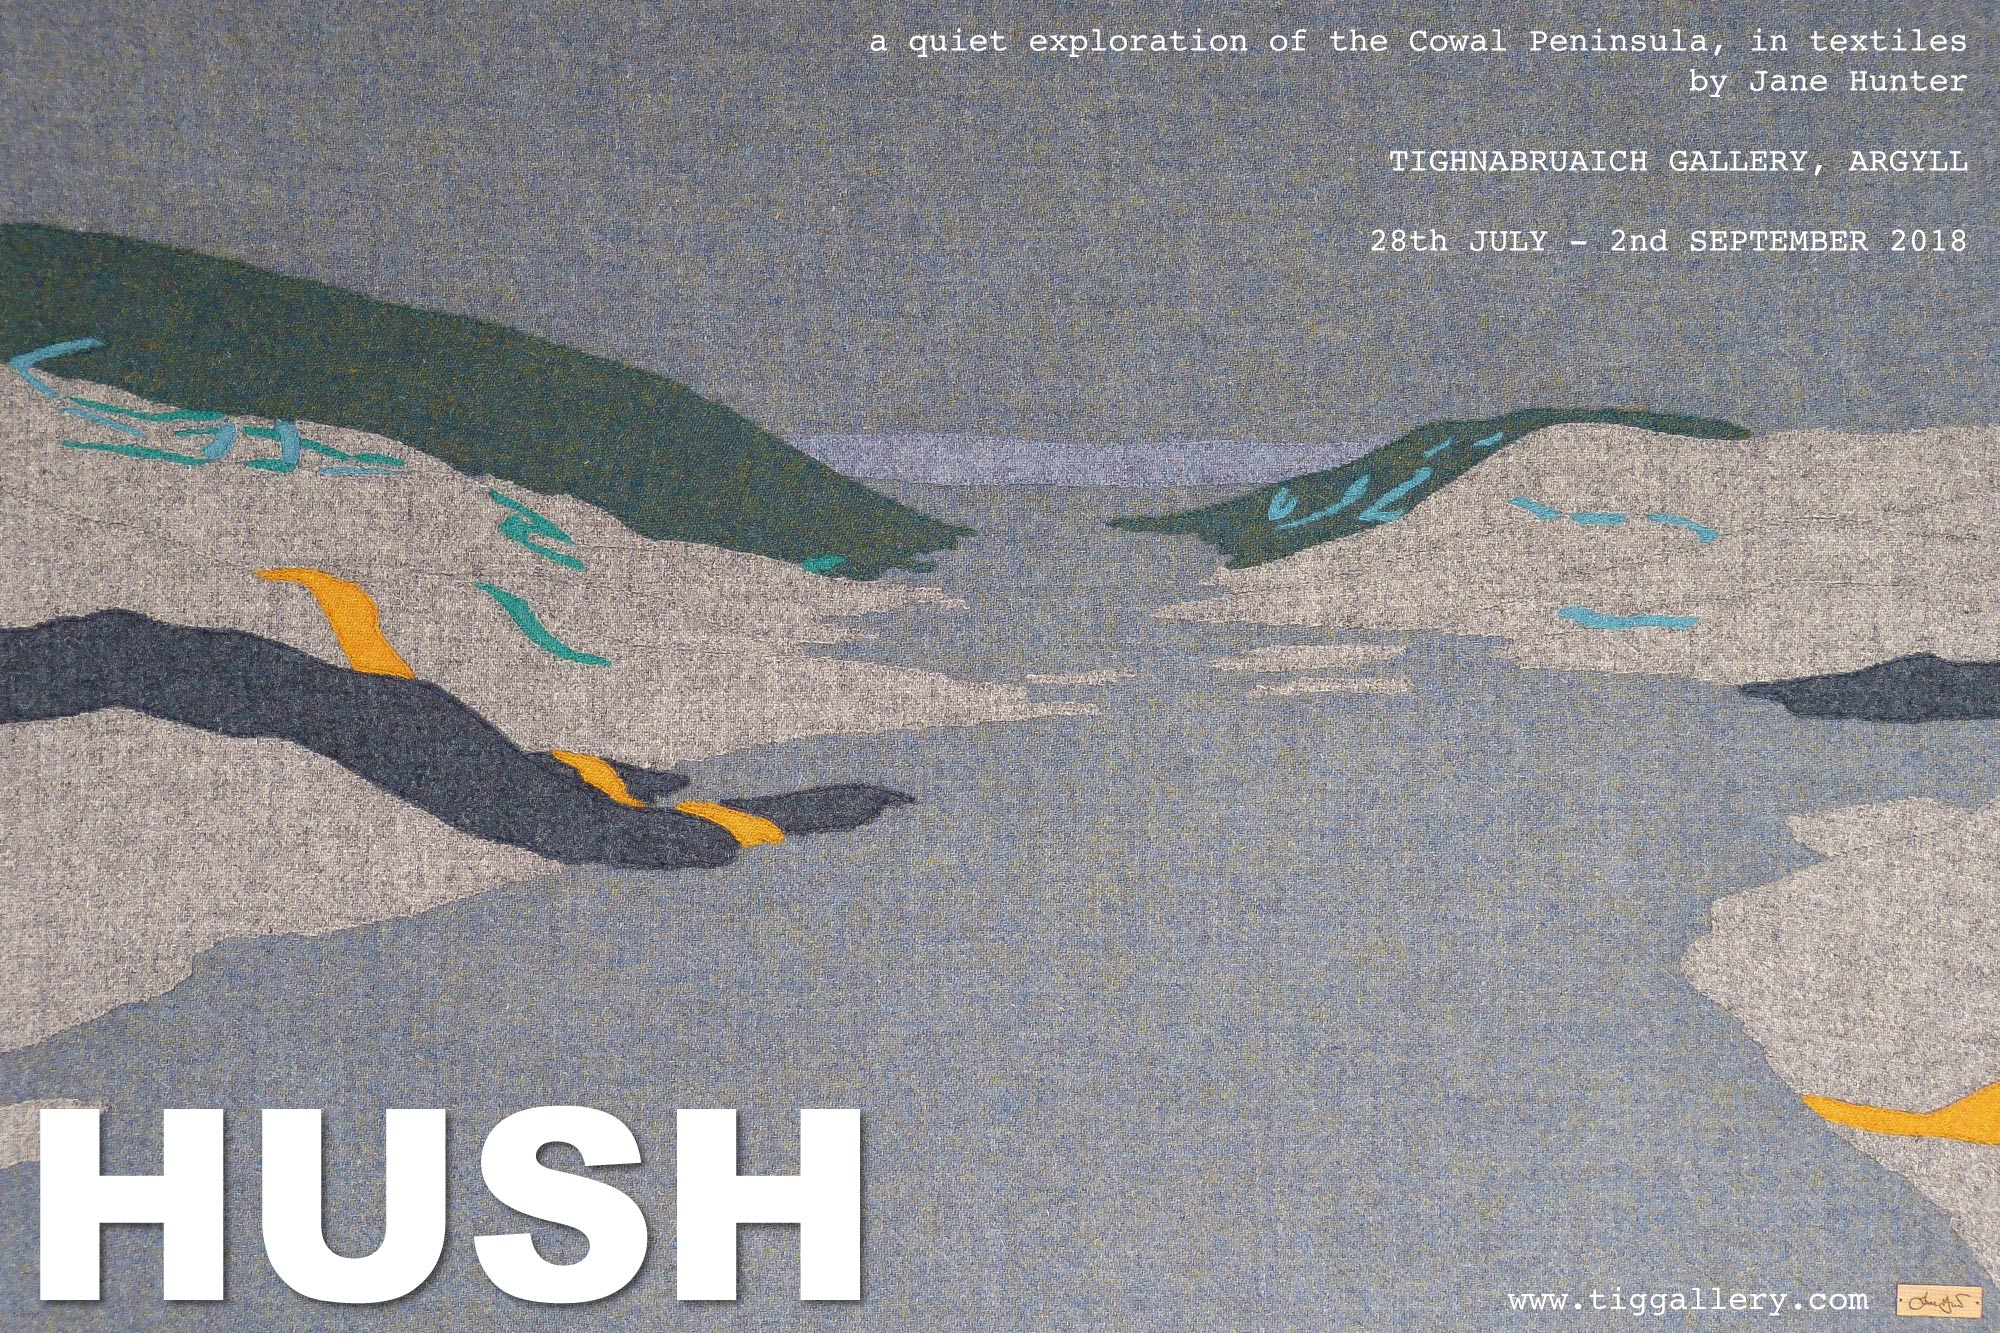 Hush - Art Exhibition - Things to do in Argyll Summer 2018